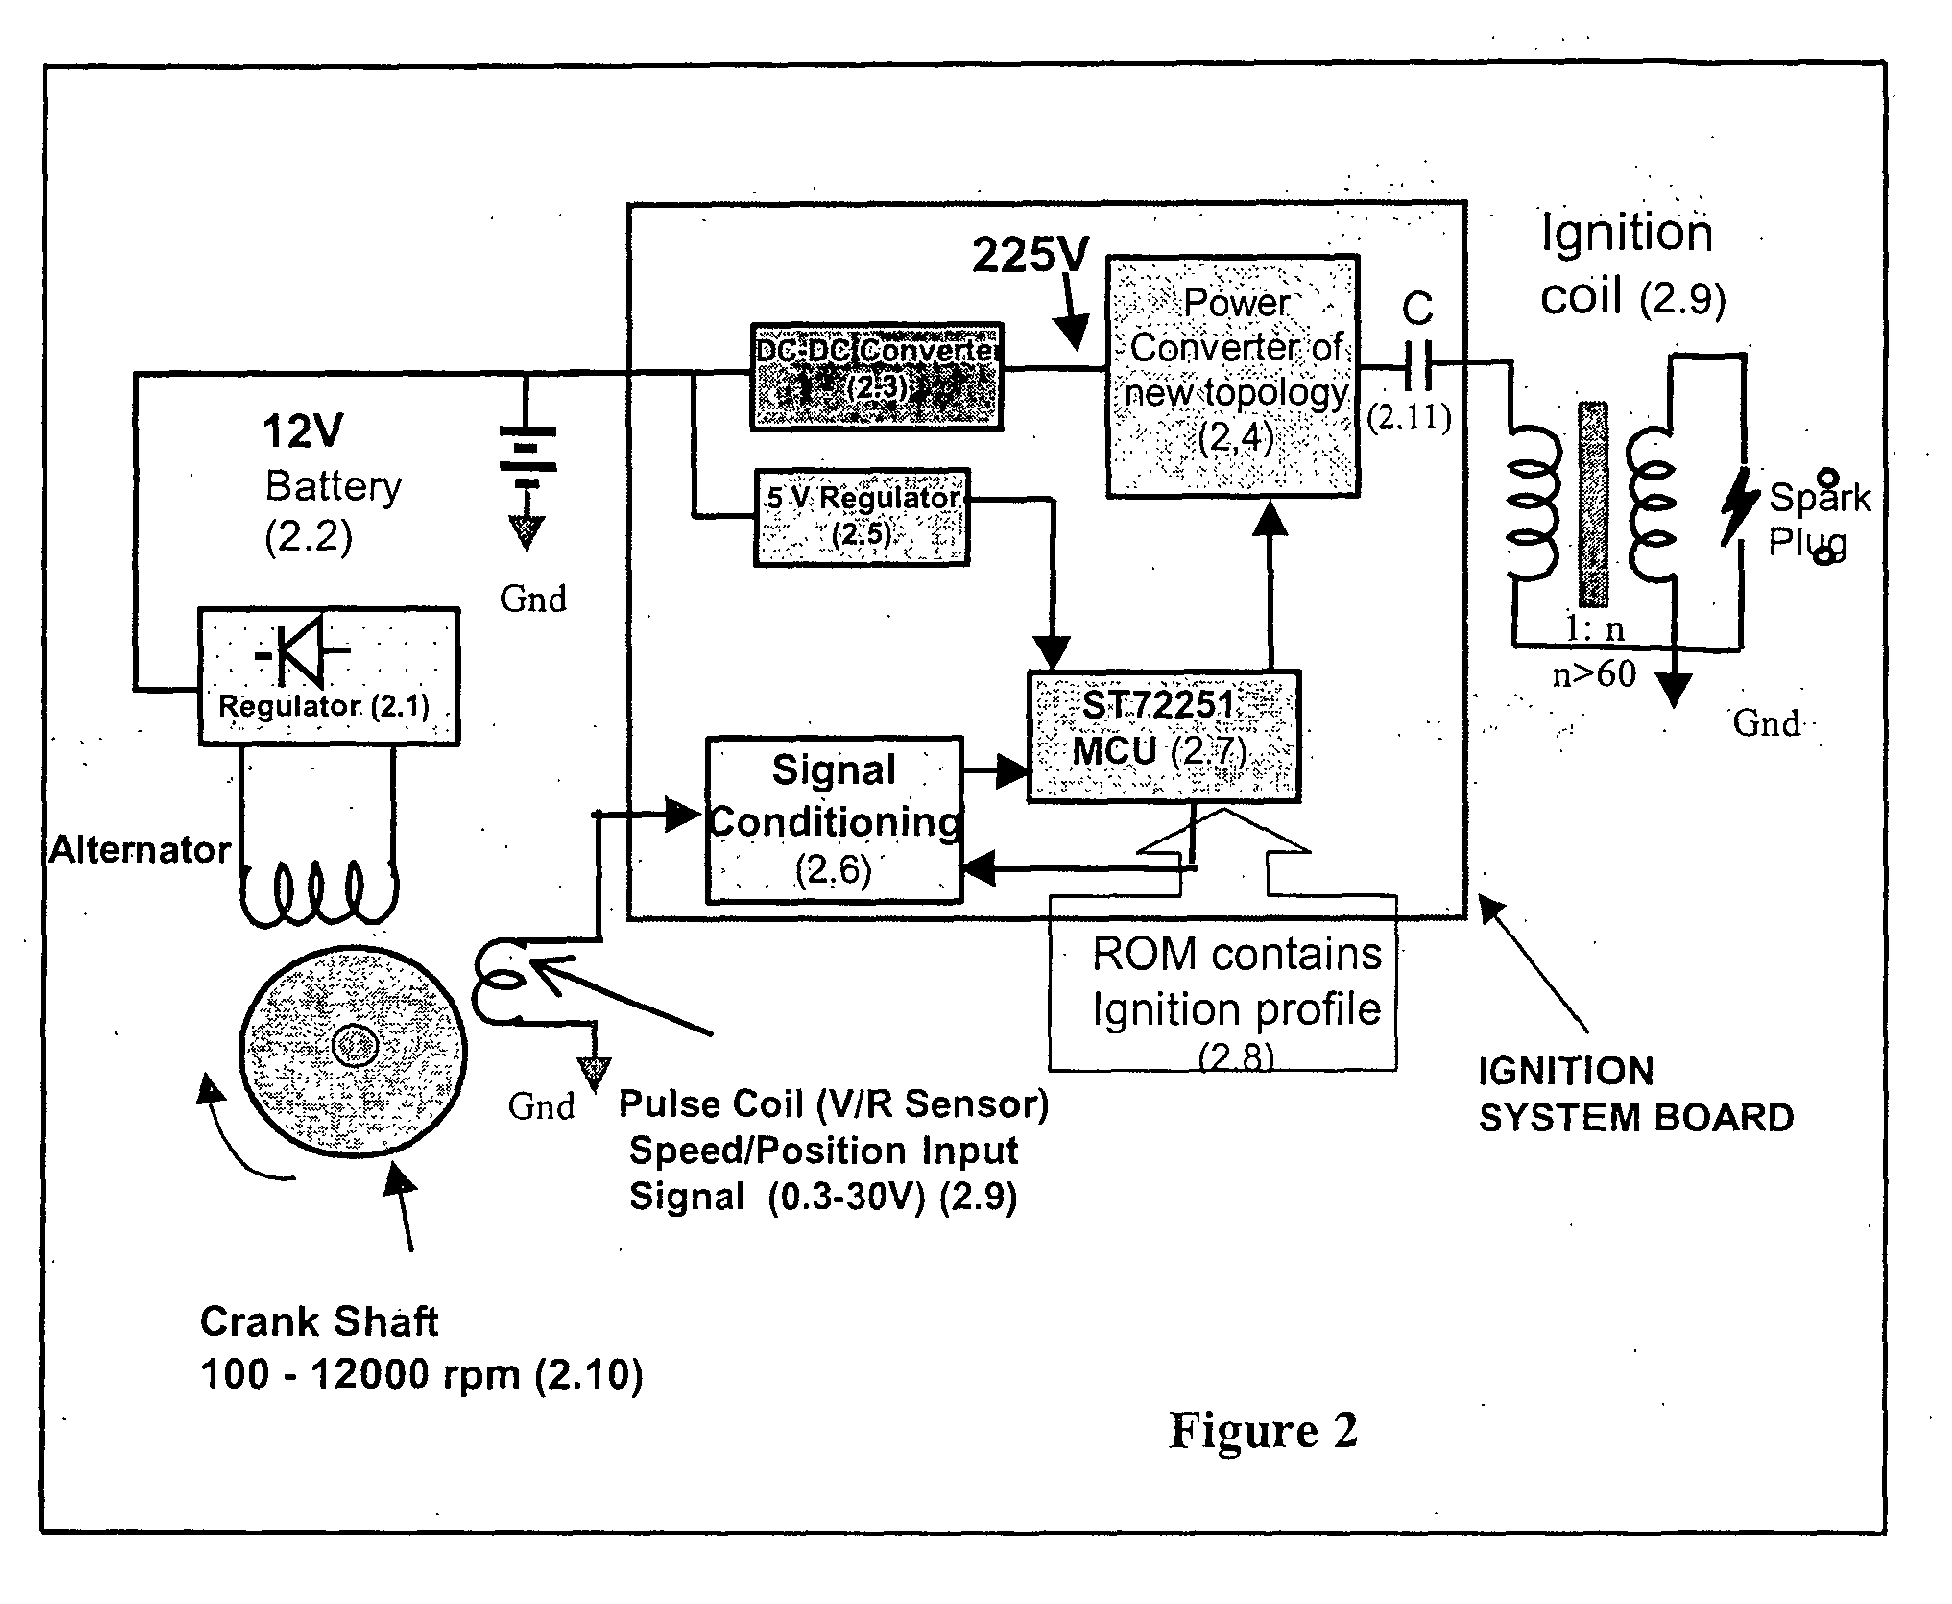 electrical plug diagram with Ep1298320a2 on How To Correctly Connect Audio Plug To Lm386 together with Toyota 4runner 1996 2002 Why Does 4wd Dash Light Stay On 416184 besides Buckpuck Constant Current Led Driver likewise 7672 2000 Polaris Sportsman 500 Dead Help moreover US20120178287.